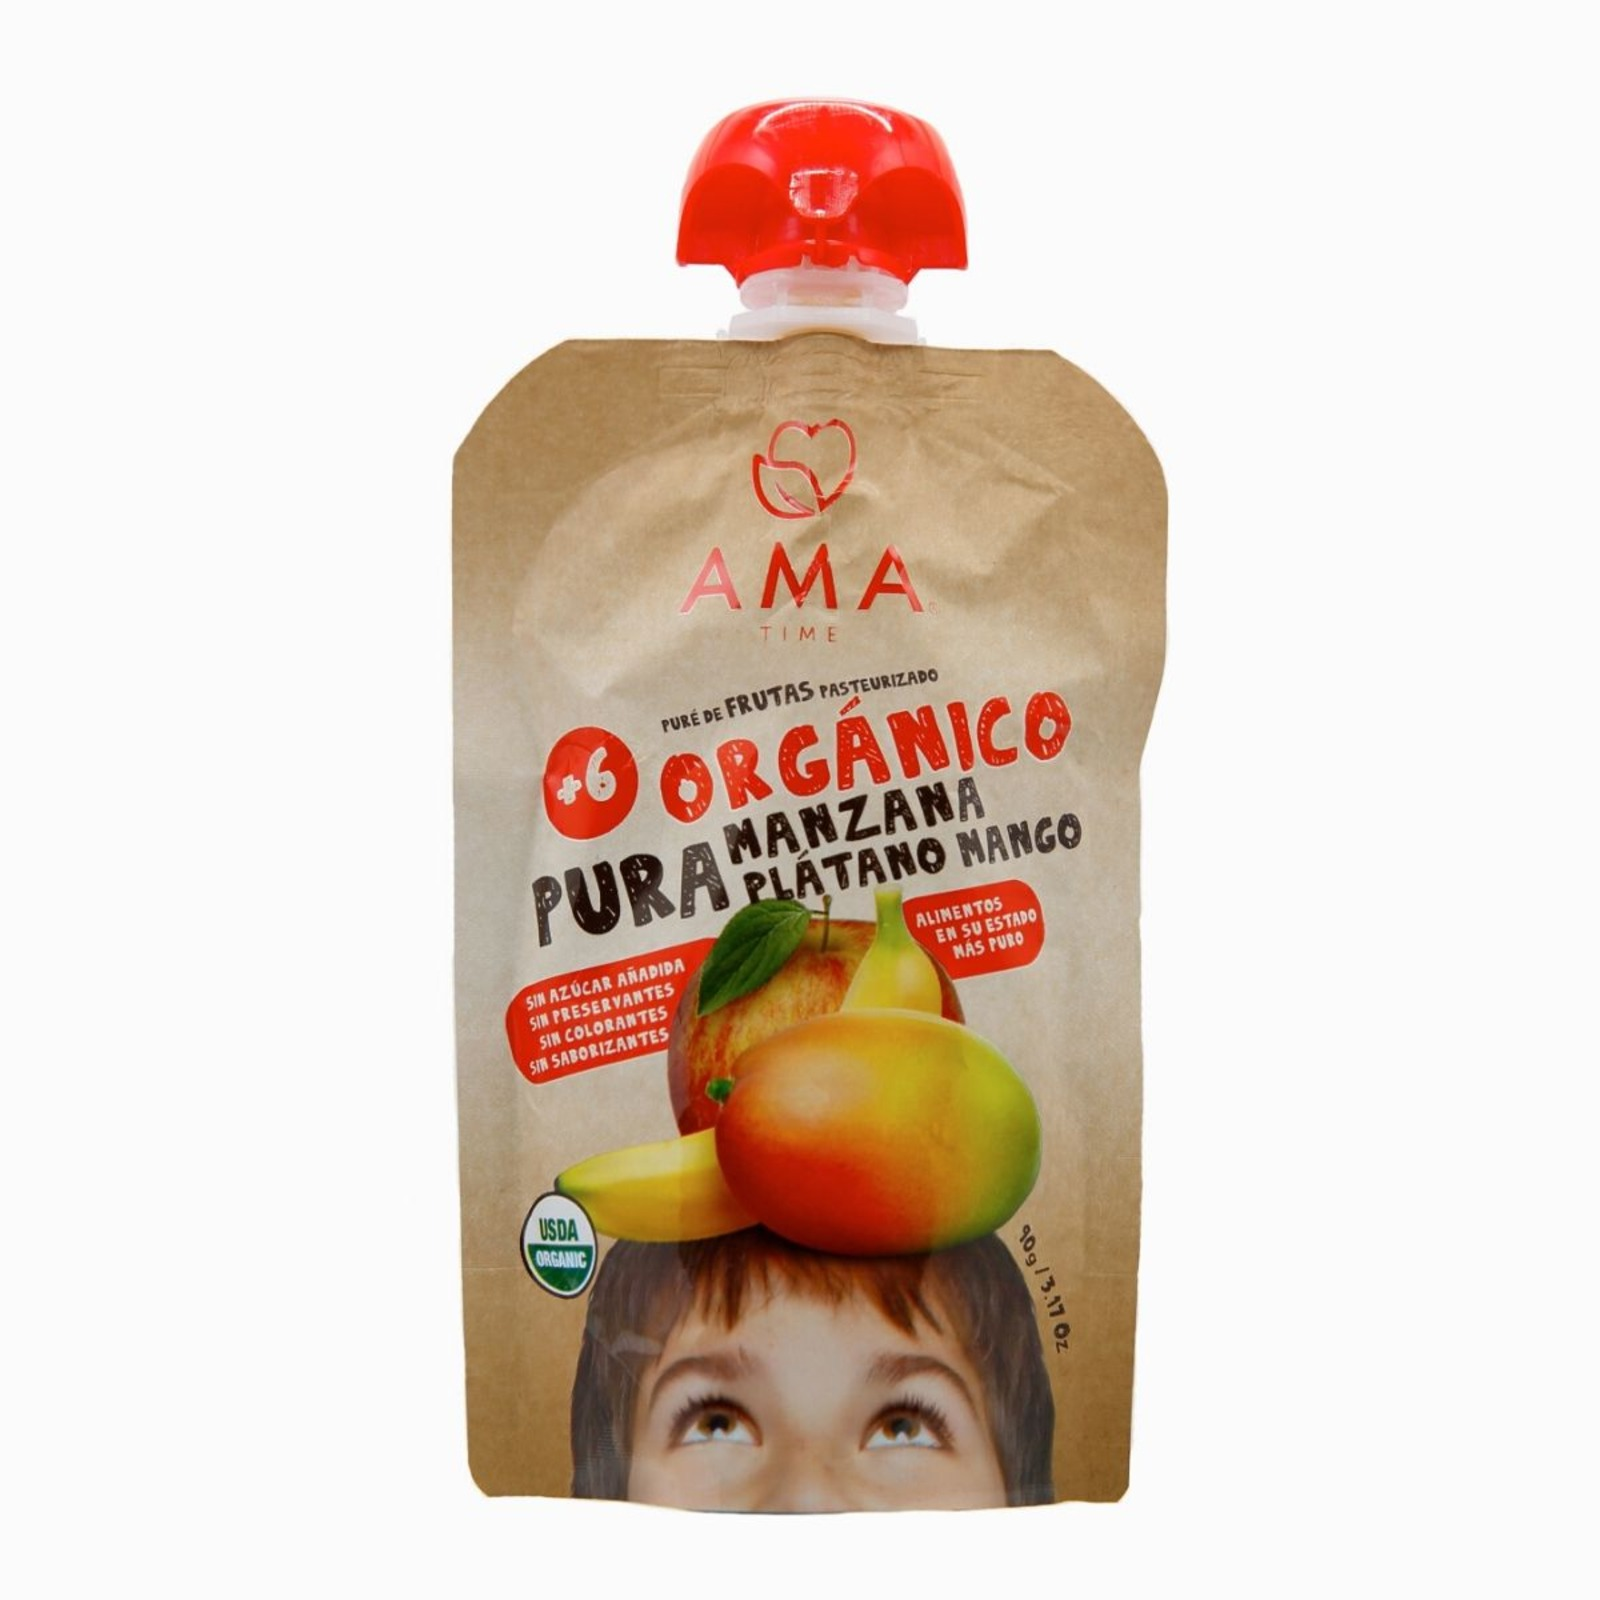 Ama Fruit Pouch - Organic Apple, Banana & Mango Puree